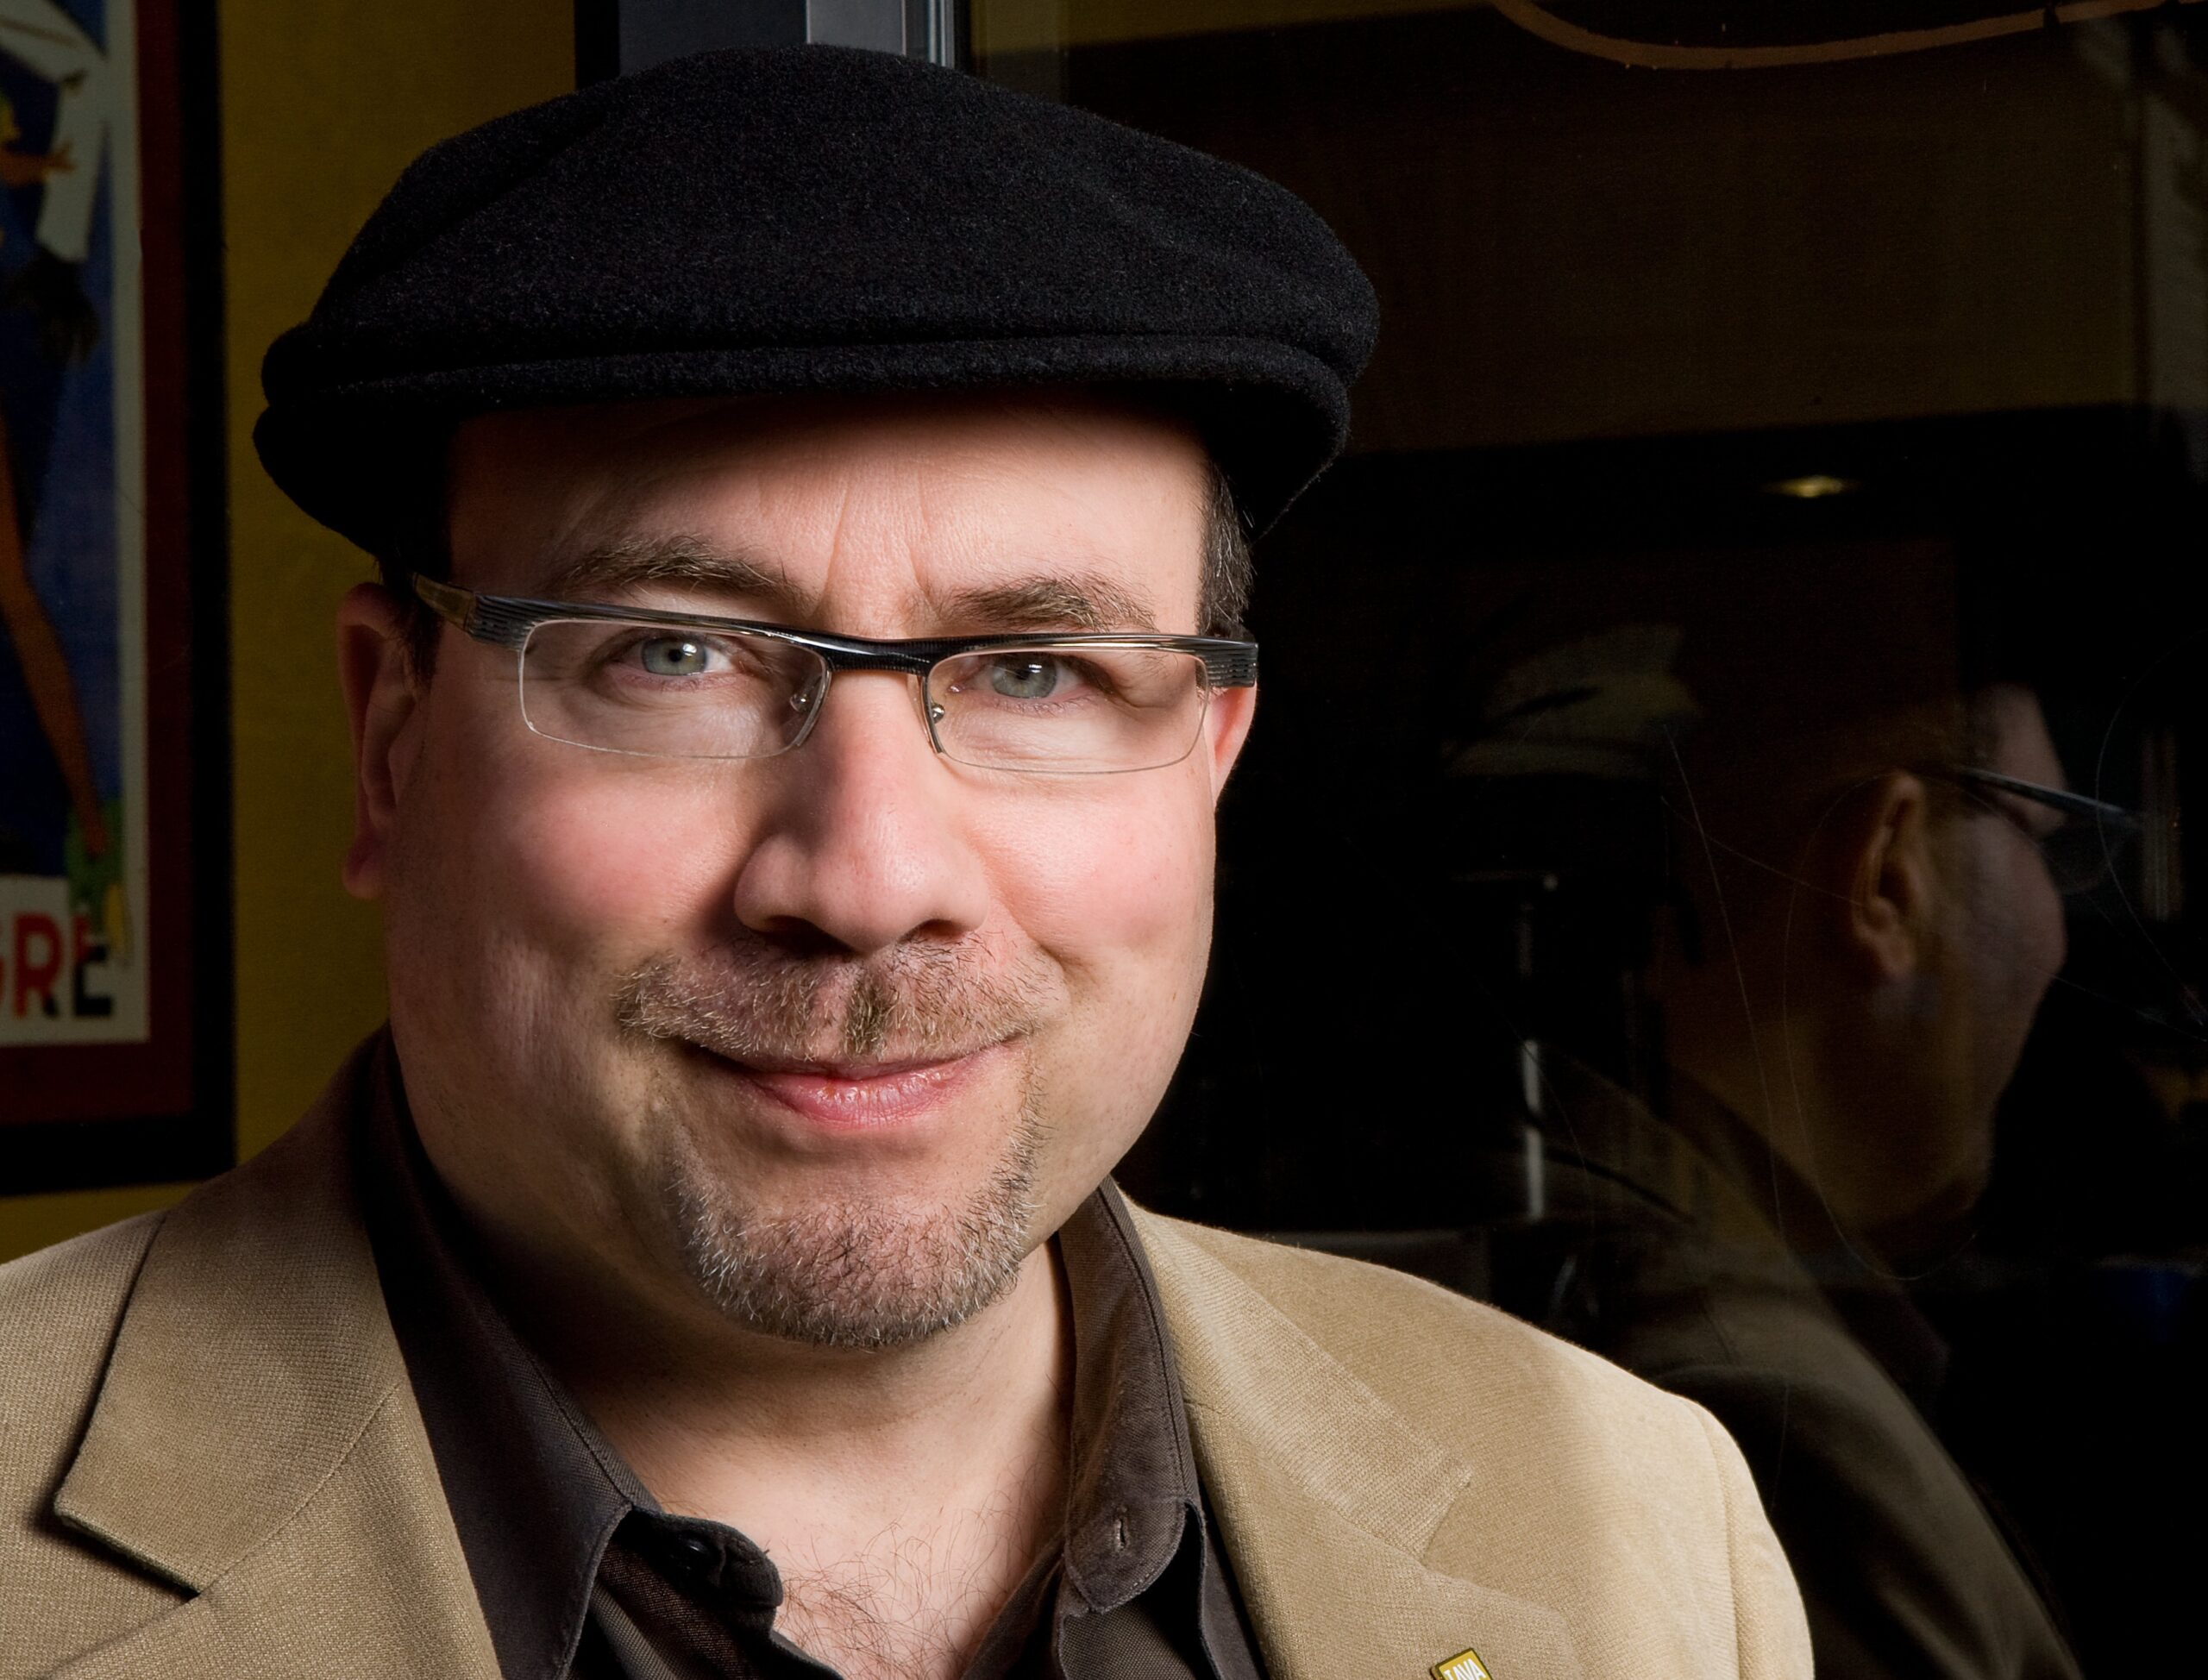 Craig Newmark interview